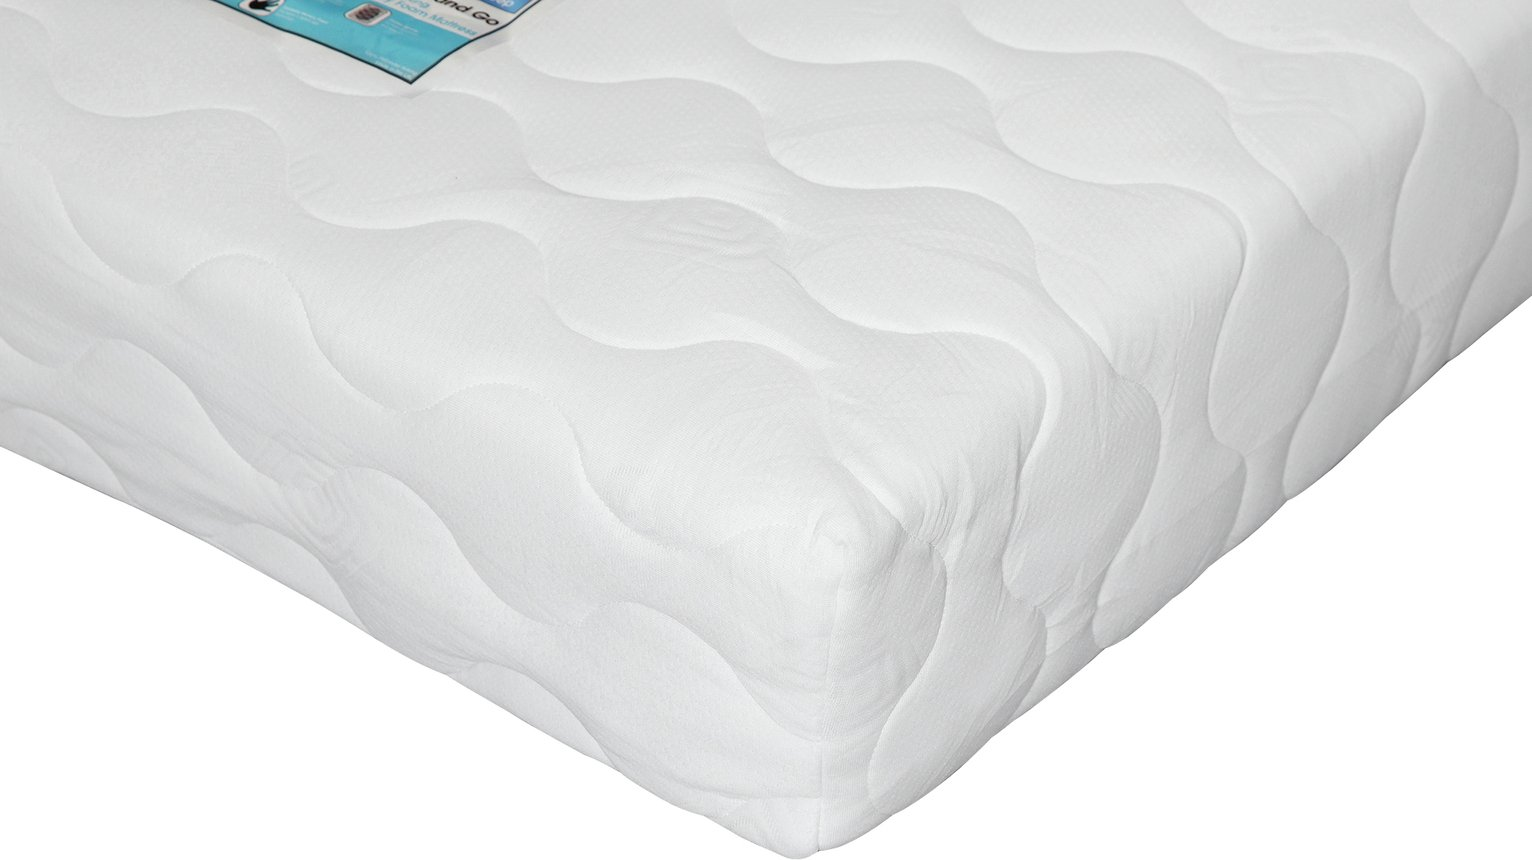 I-Sleep Collect and Go Pocket Memory Foam Single Mattress